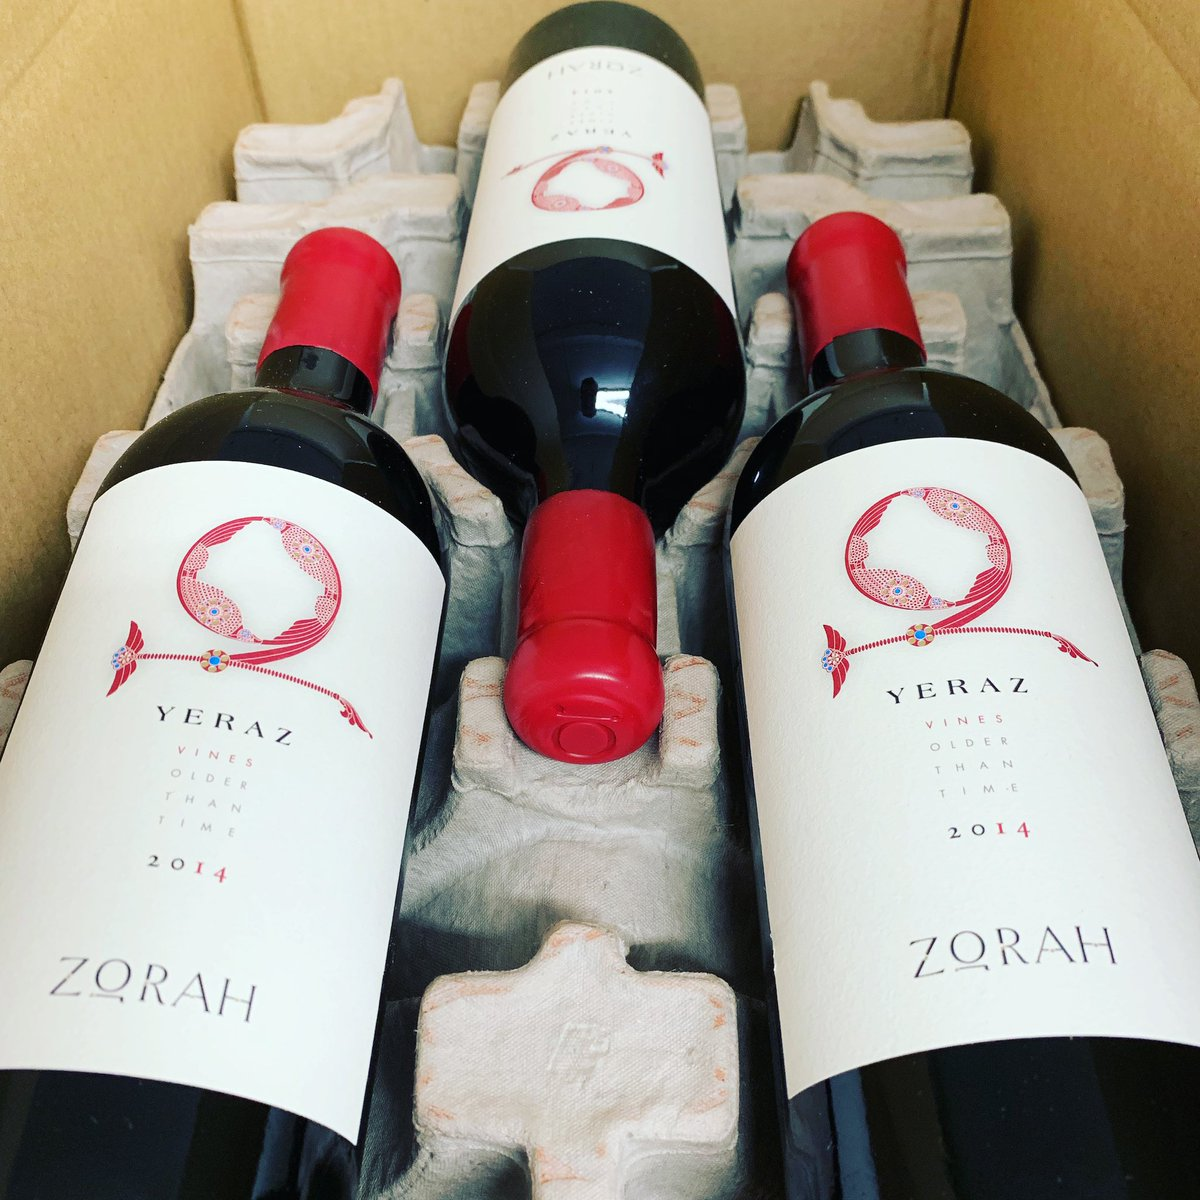 Get your 2014 Zorah Yeraz Wines before it's too late. These are going to someone else.  http://WinesofArmenia.com .  #zorah #yeraz #zorahyeraz #winesofarmenia #armenianwine #areni #oldvines #oldvine #reservewine #reserve #redwine #veryrare #allocated @StepanWBpic.twitter.com/xSyd2Phsd9